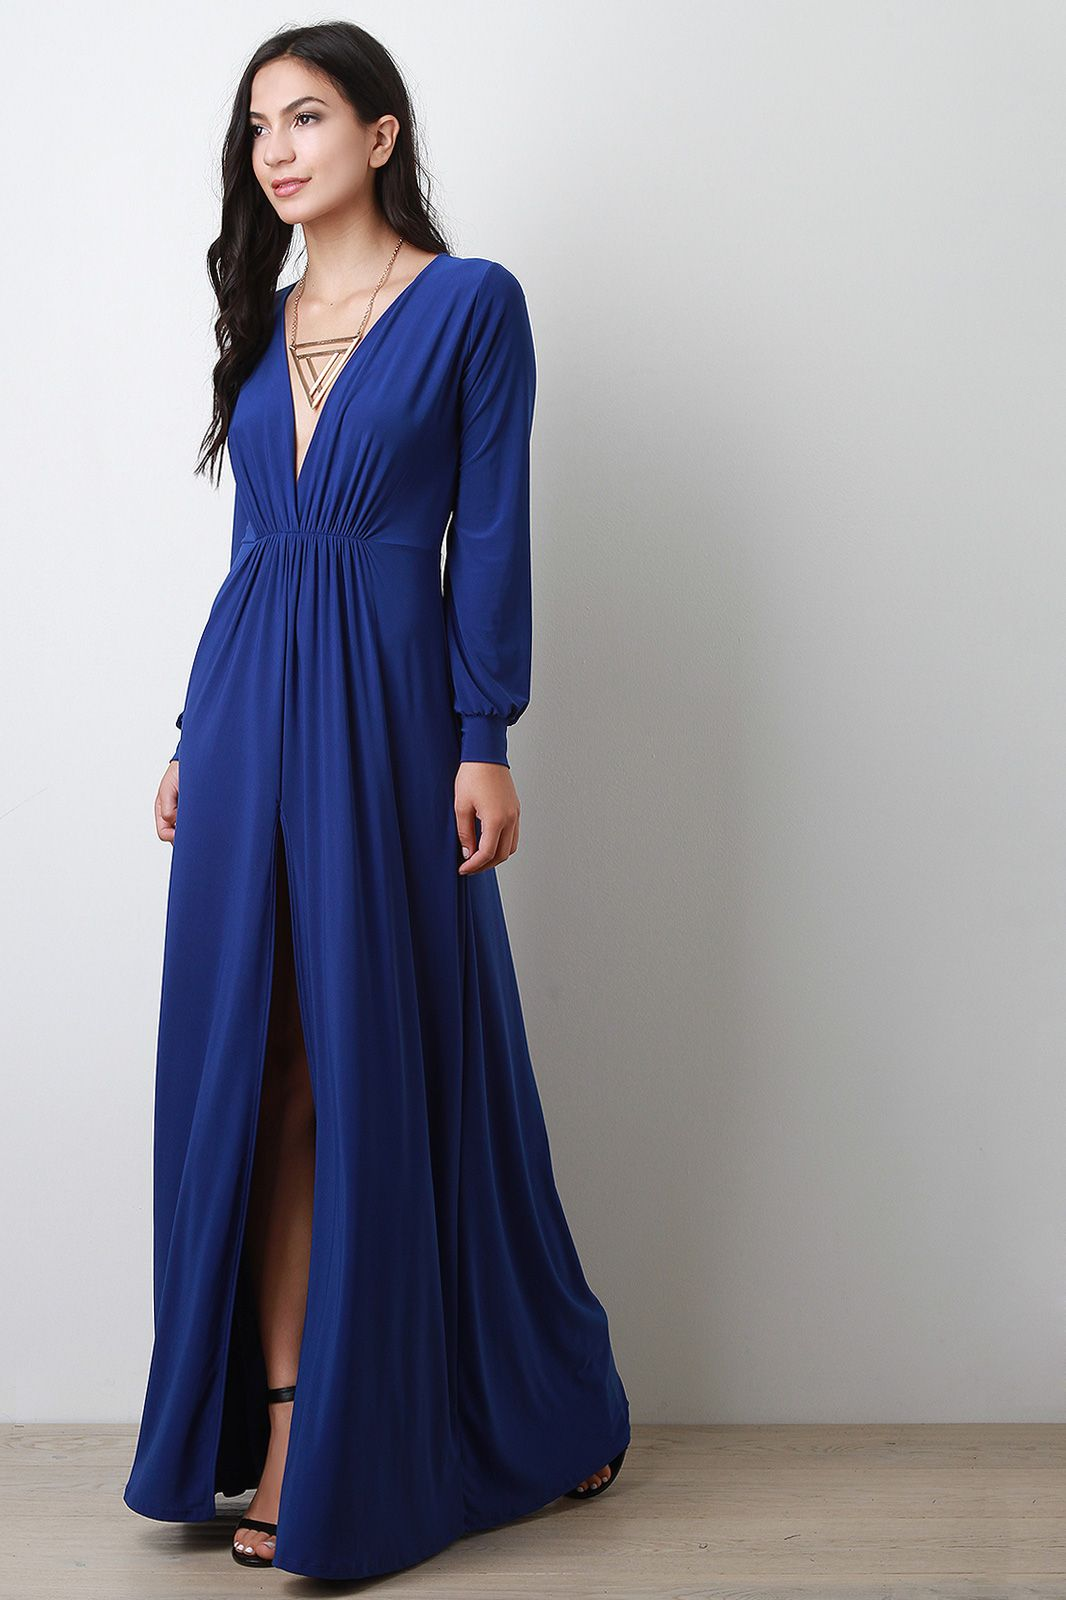 Vent slit long sleeve maxi dress approved pinterest long